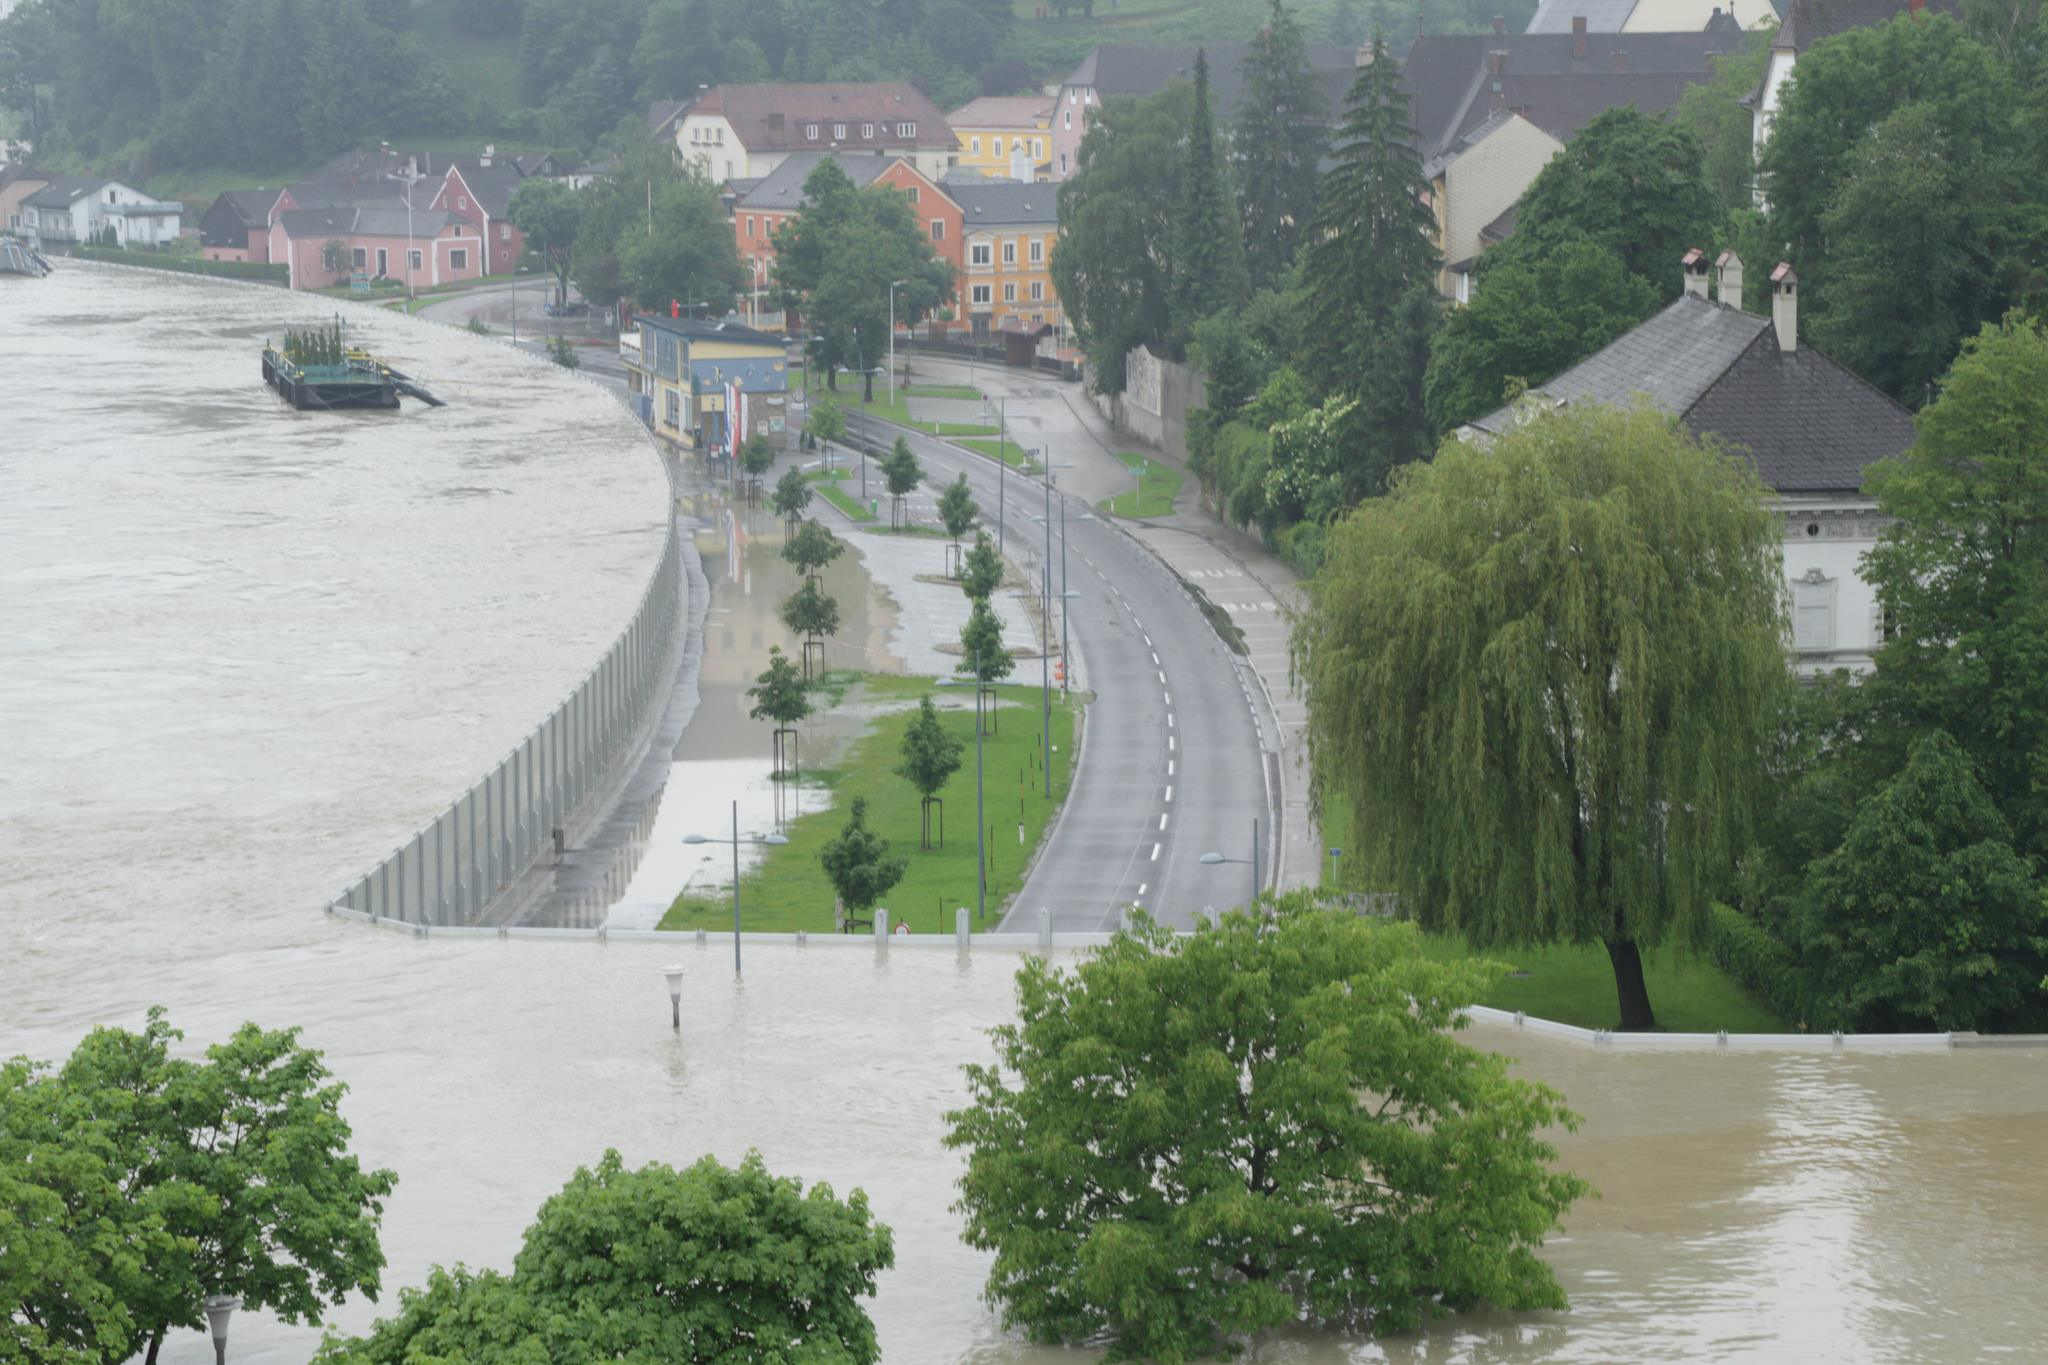 A mobile floodwall in Austria